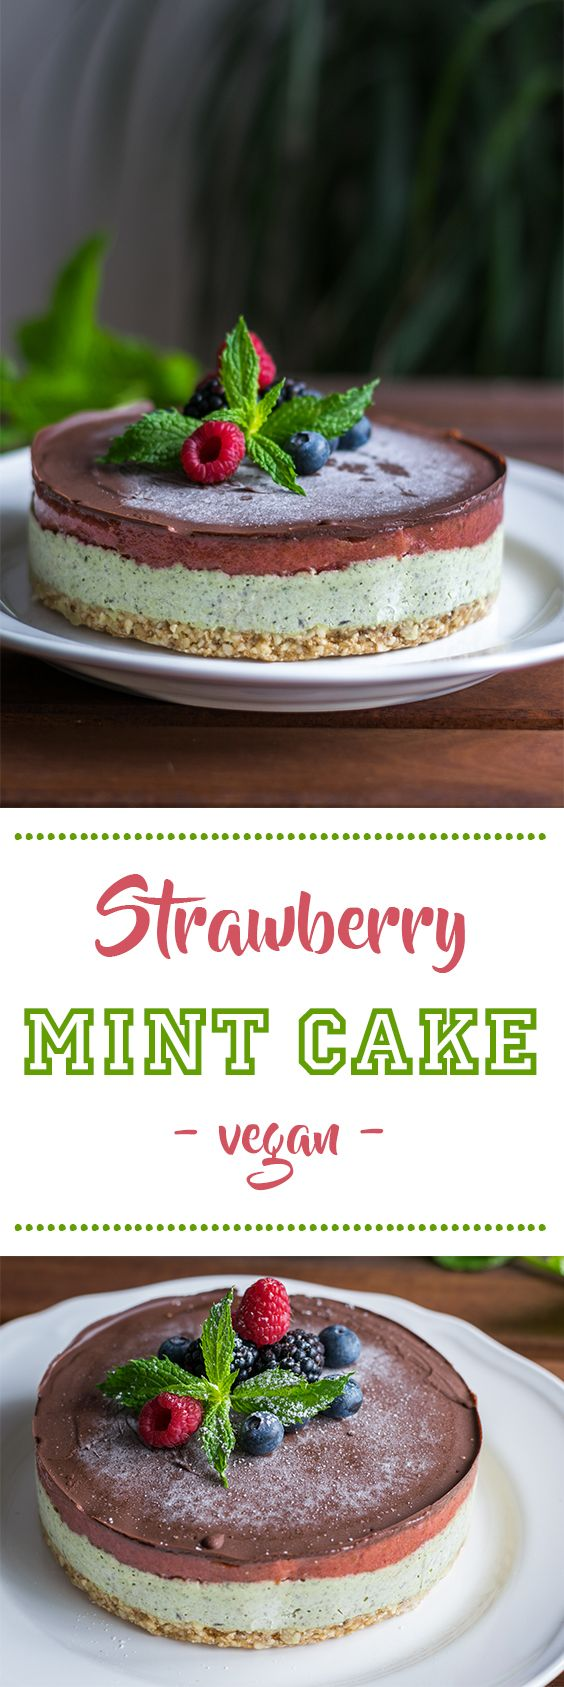 Frozen strawberry and mint cake. This and more recipes at www.eat-vegan.de #nuts #nobake #vegan #mint #strawberries #dessert #frozen